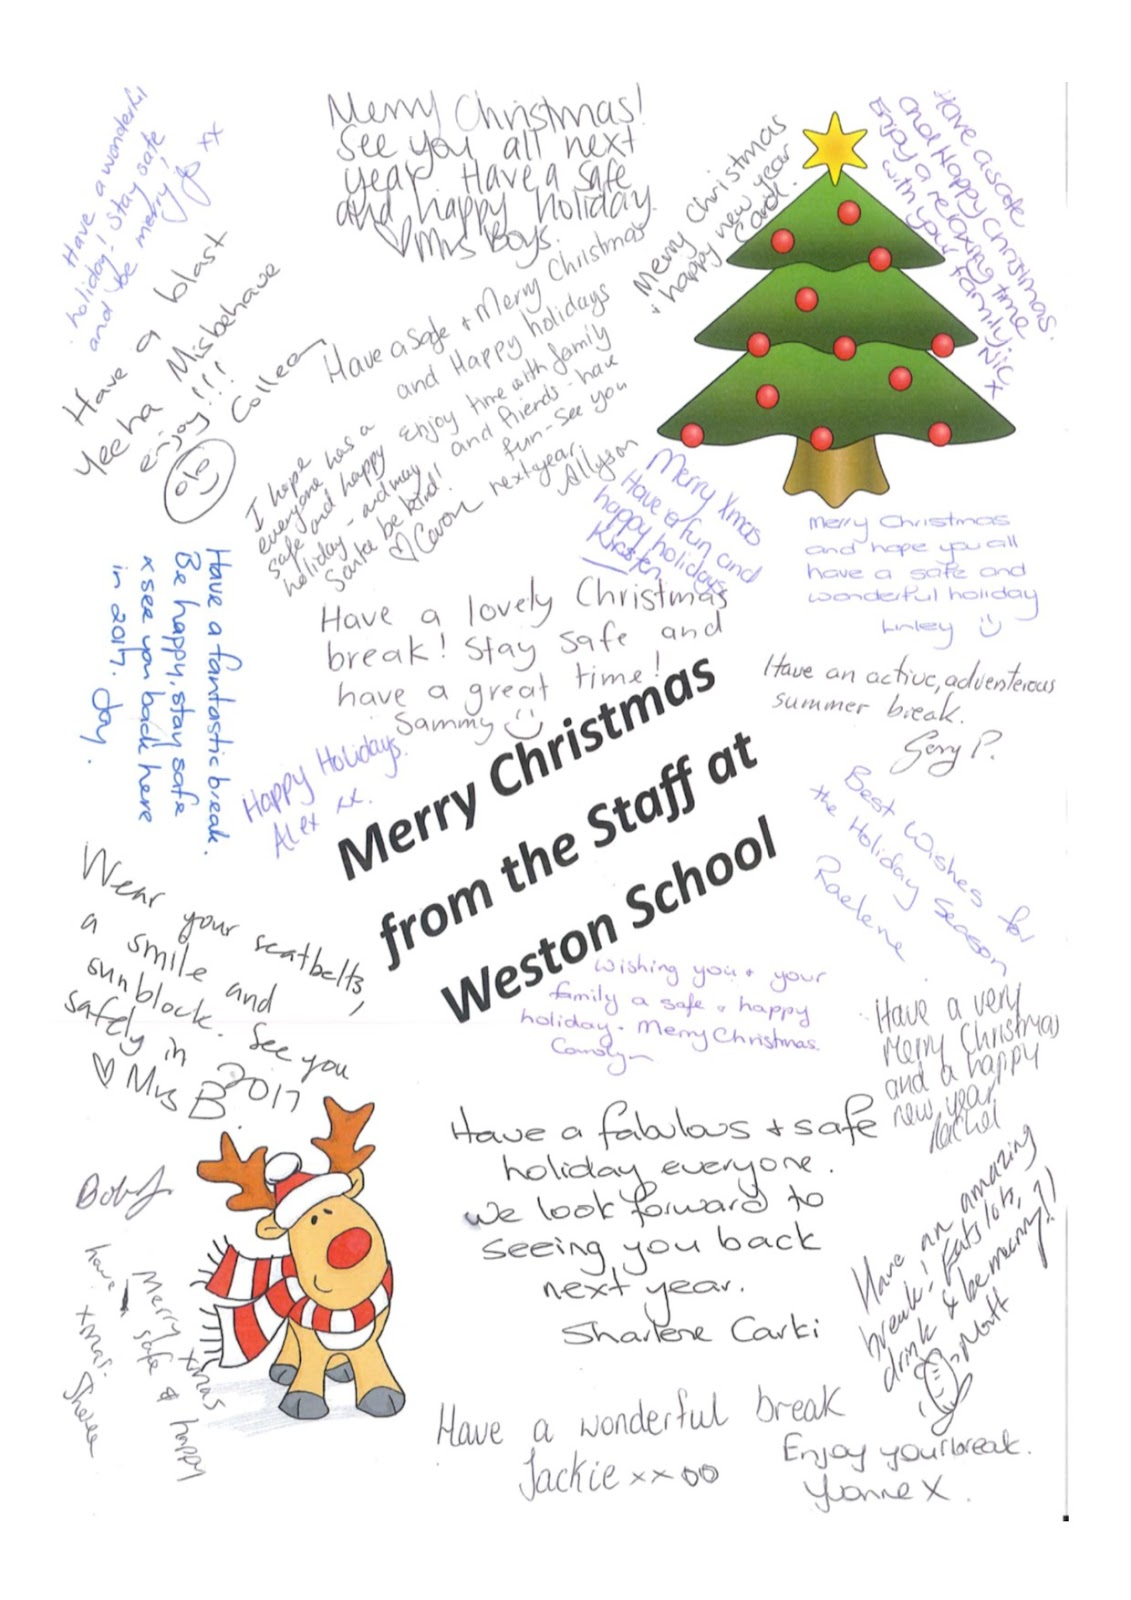 Merry Christmas Note from Staff.jpg